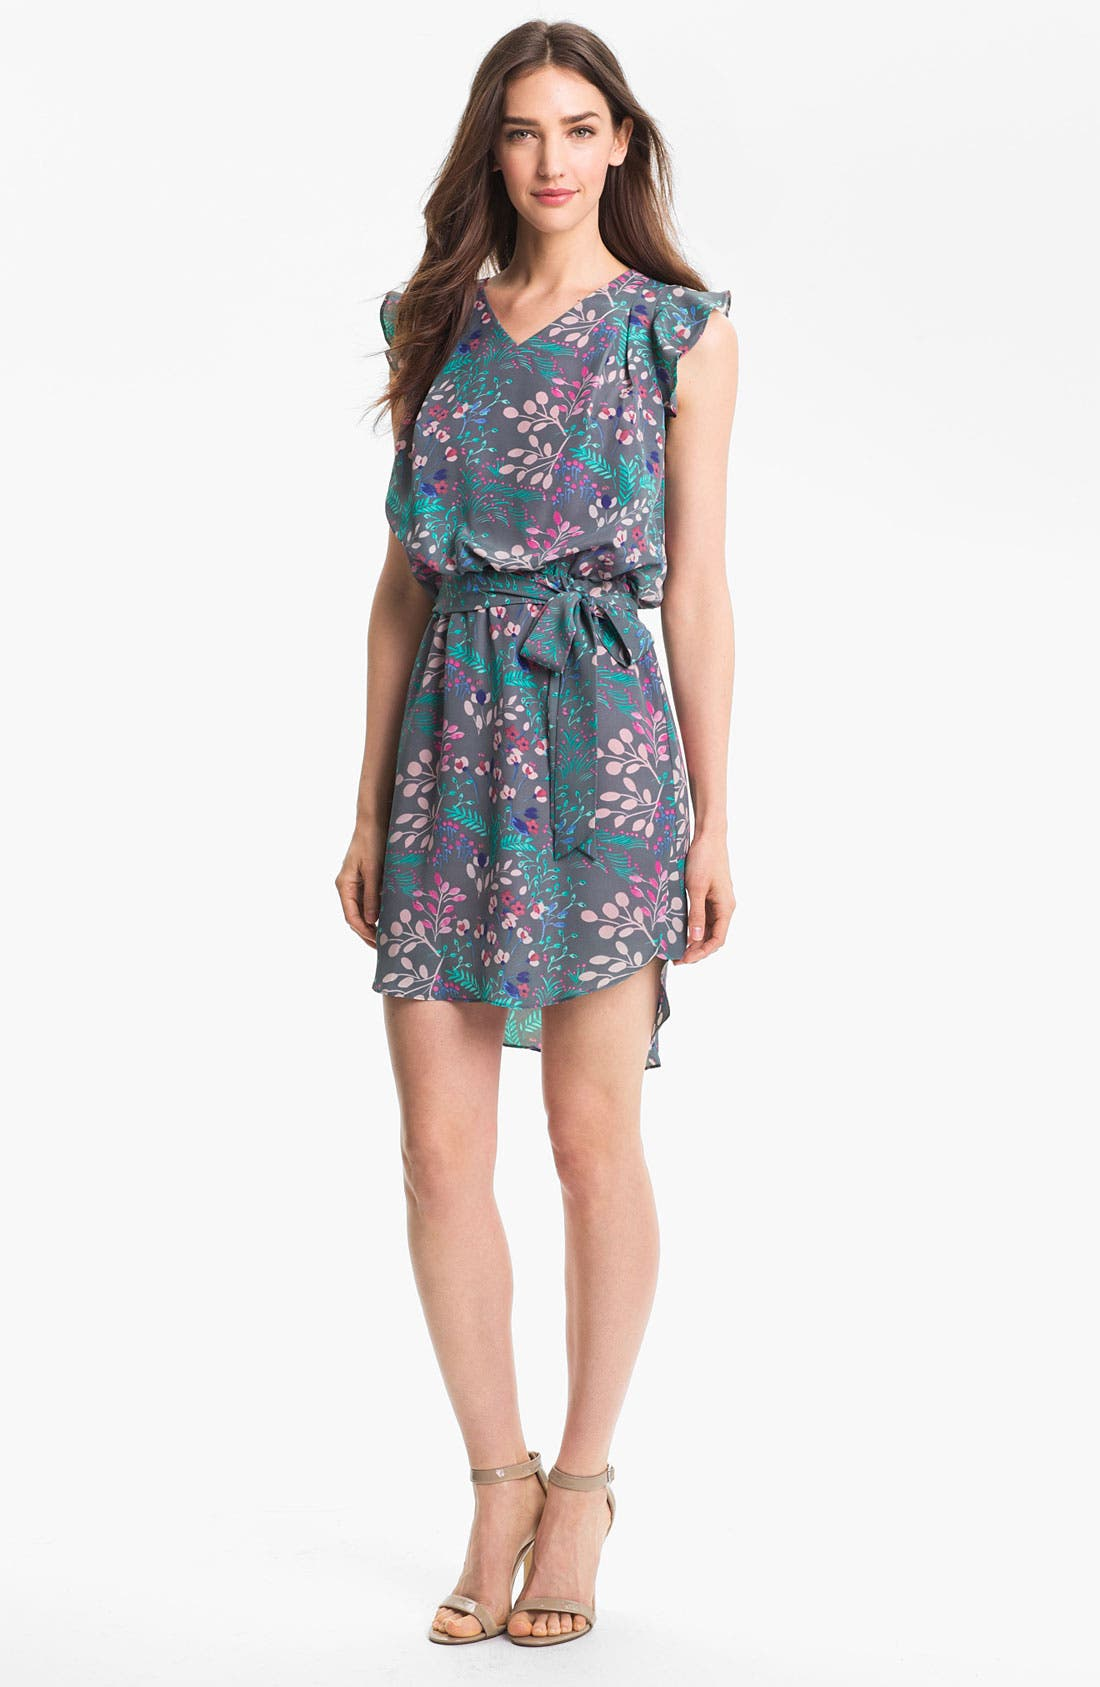 Main Image - Jessica Simpson Print Blouson Dress